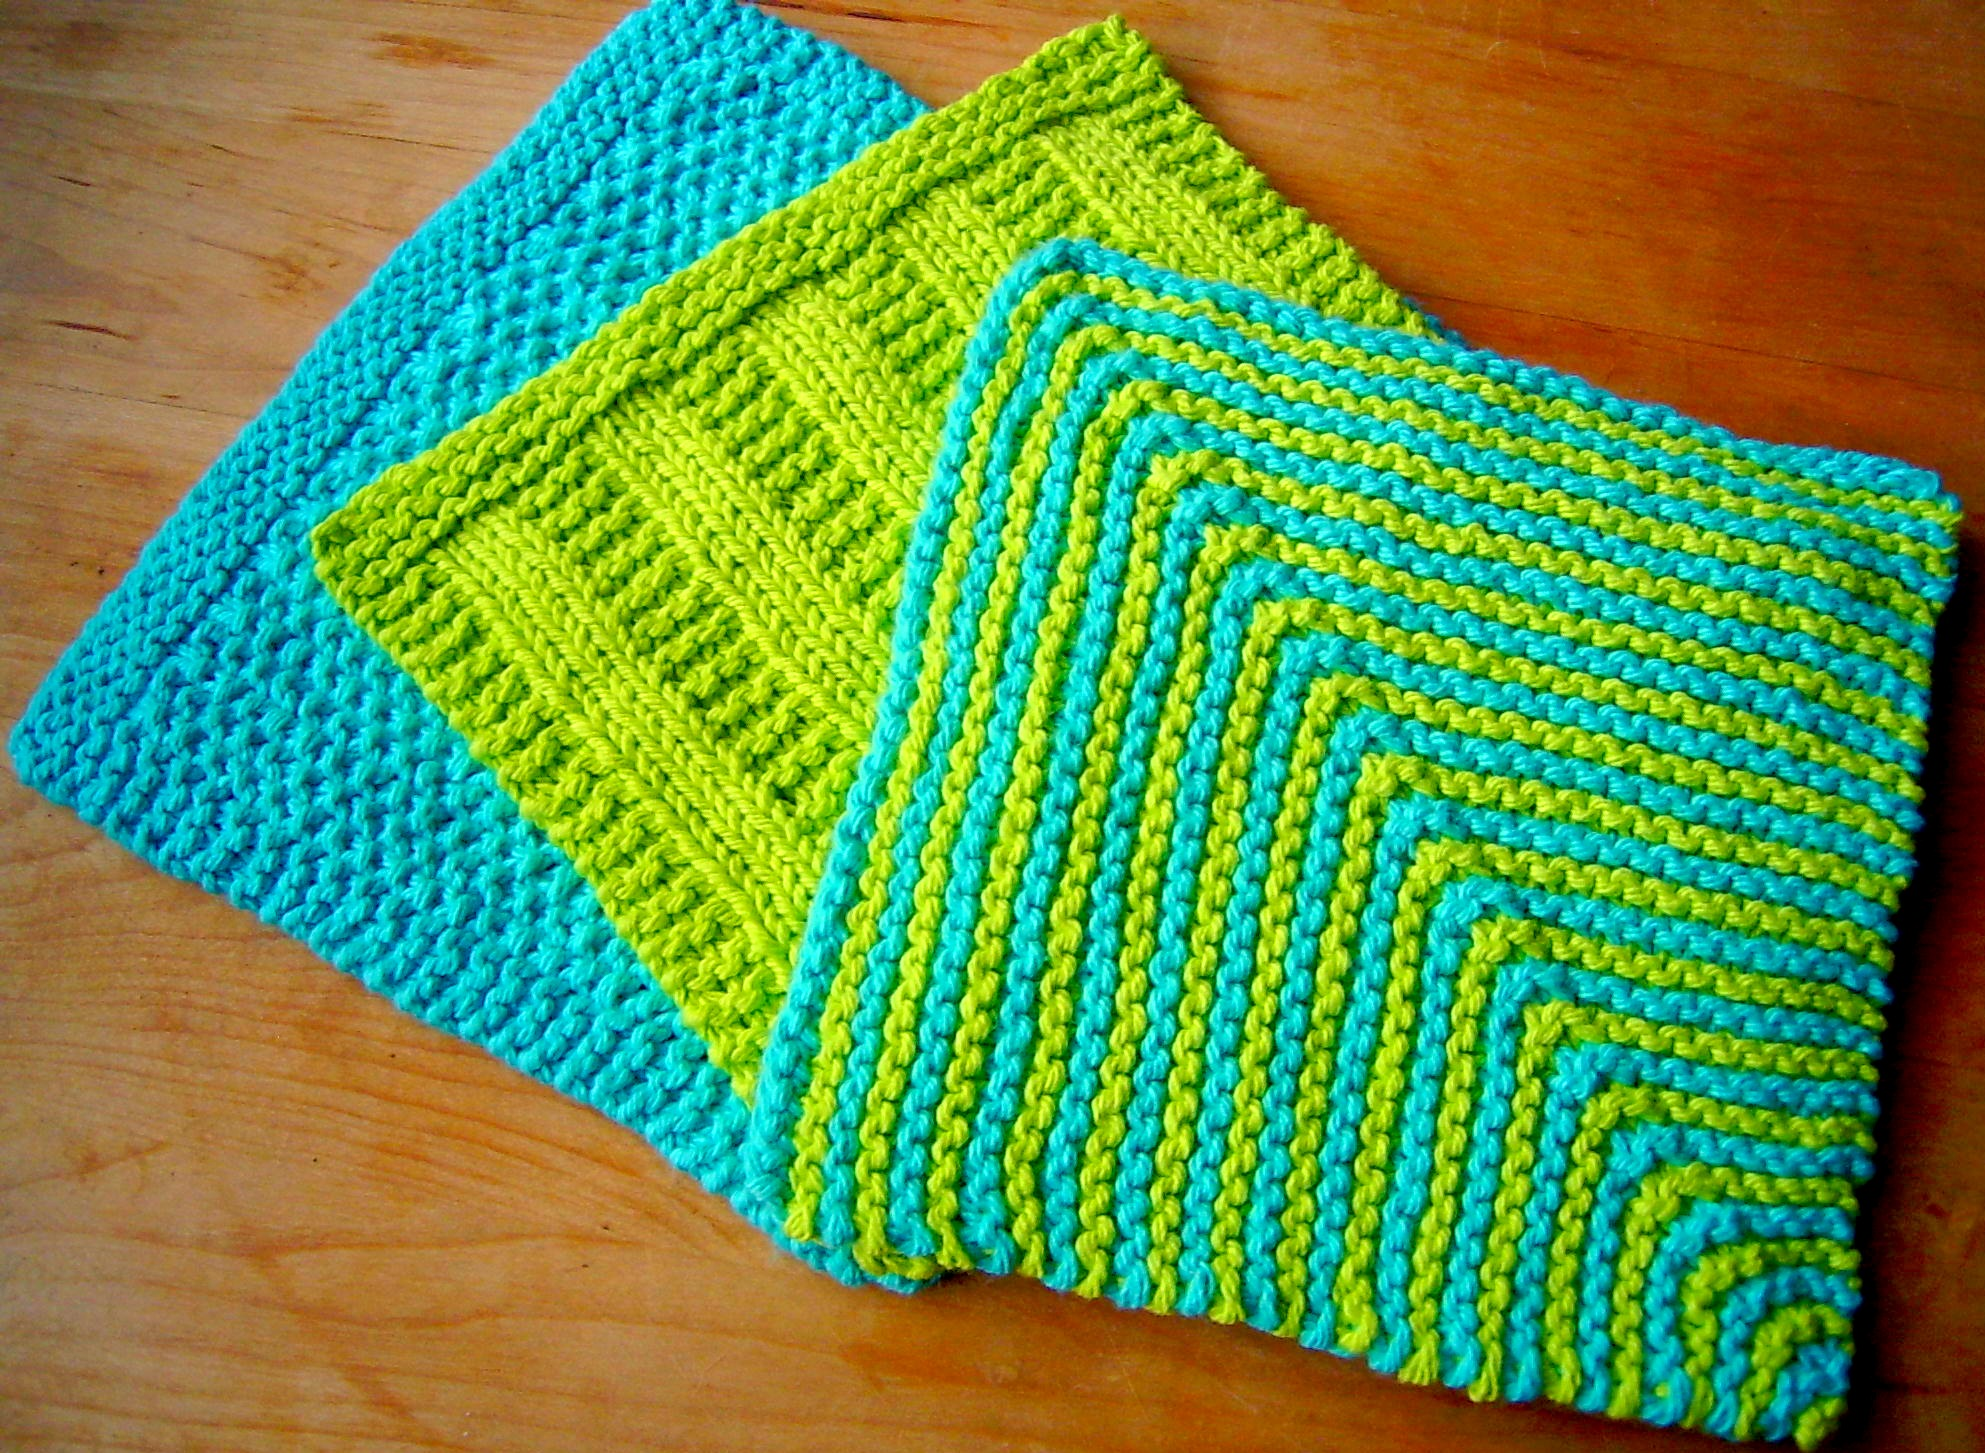 Knitted Dish Towel Pattern Awesome Decorating